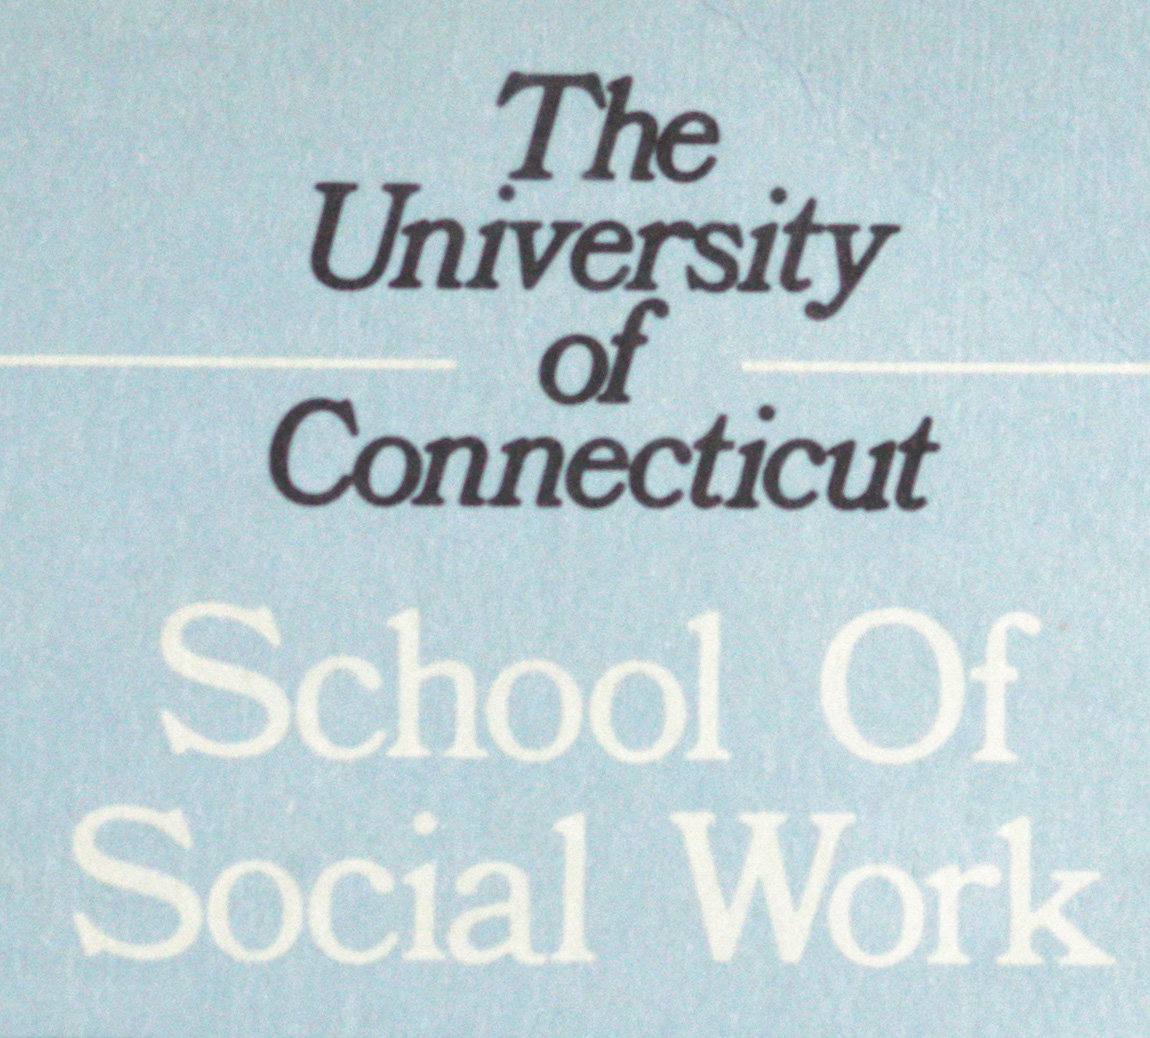 School of Social Work Course Catalog